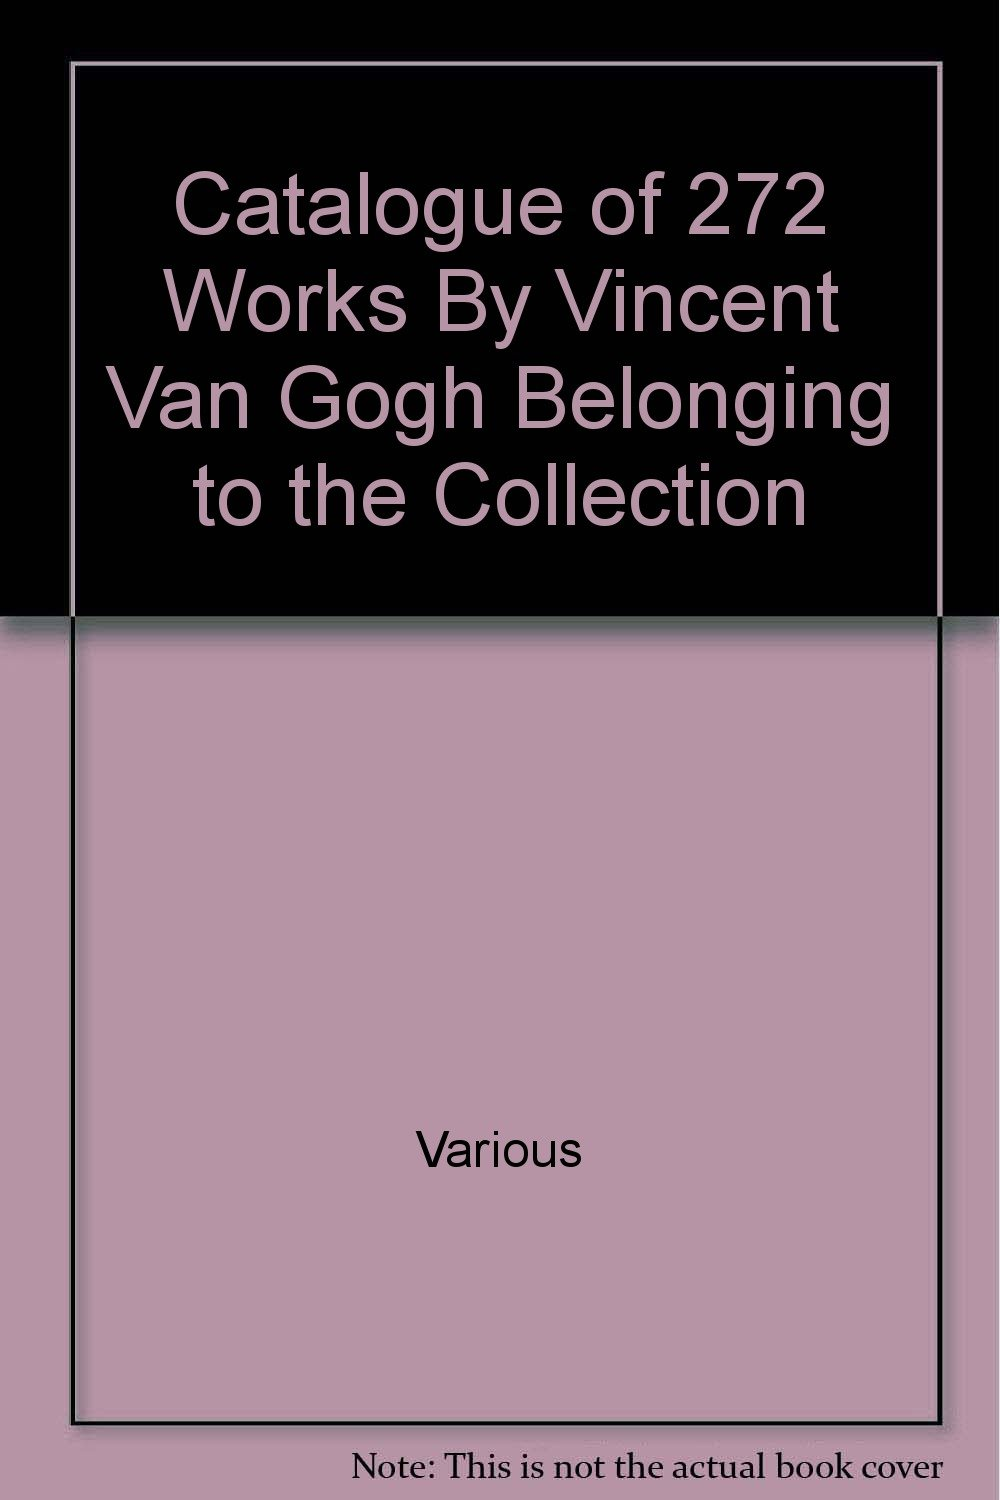 catalogue of 272 works of vincent van gogh